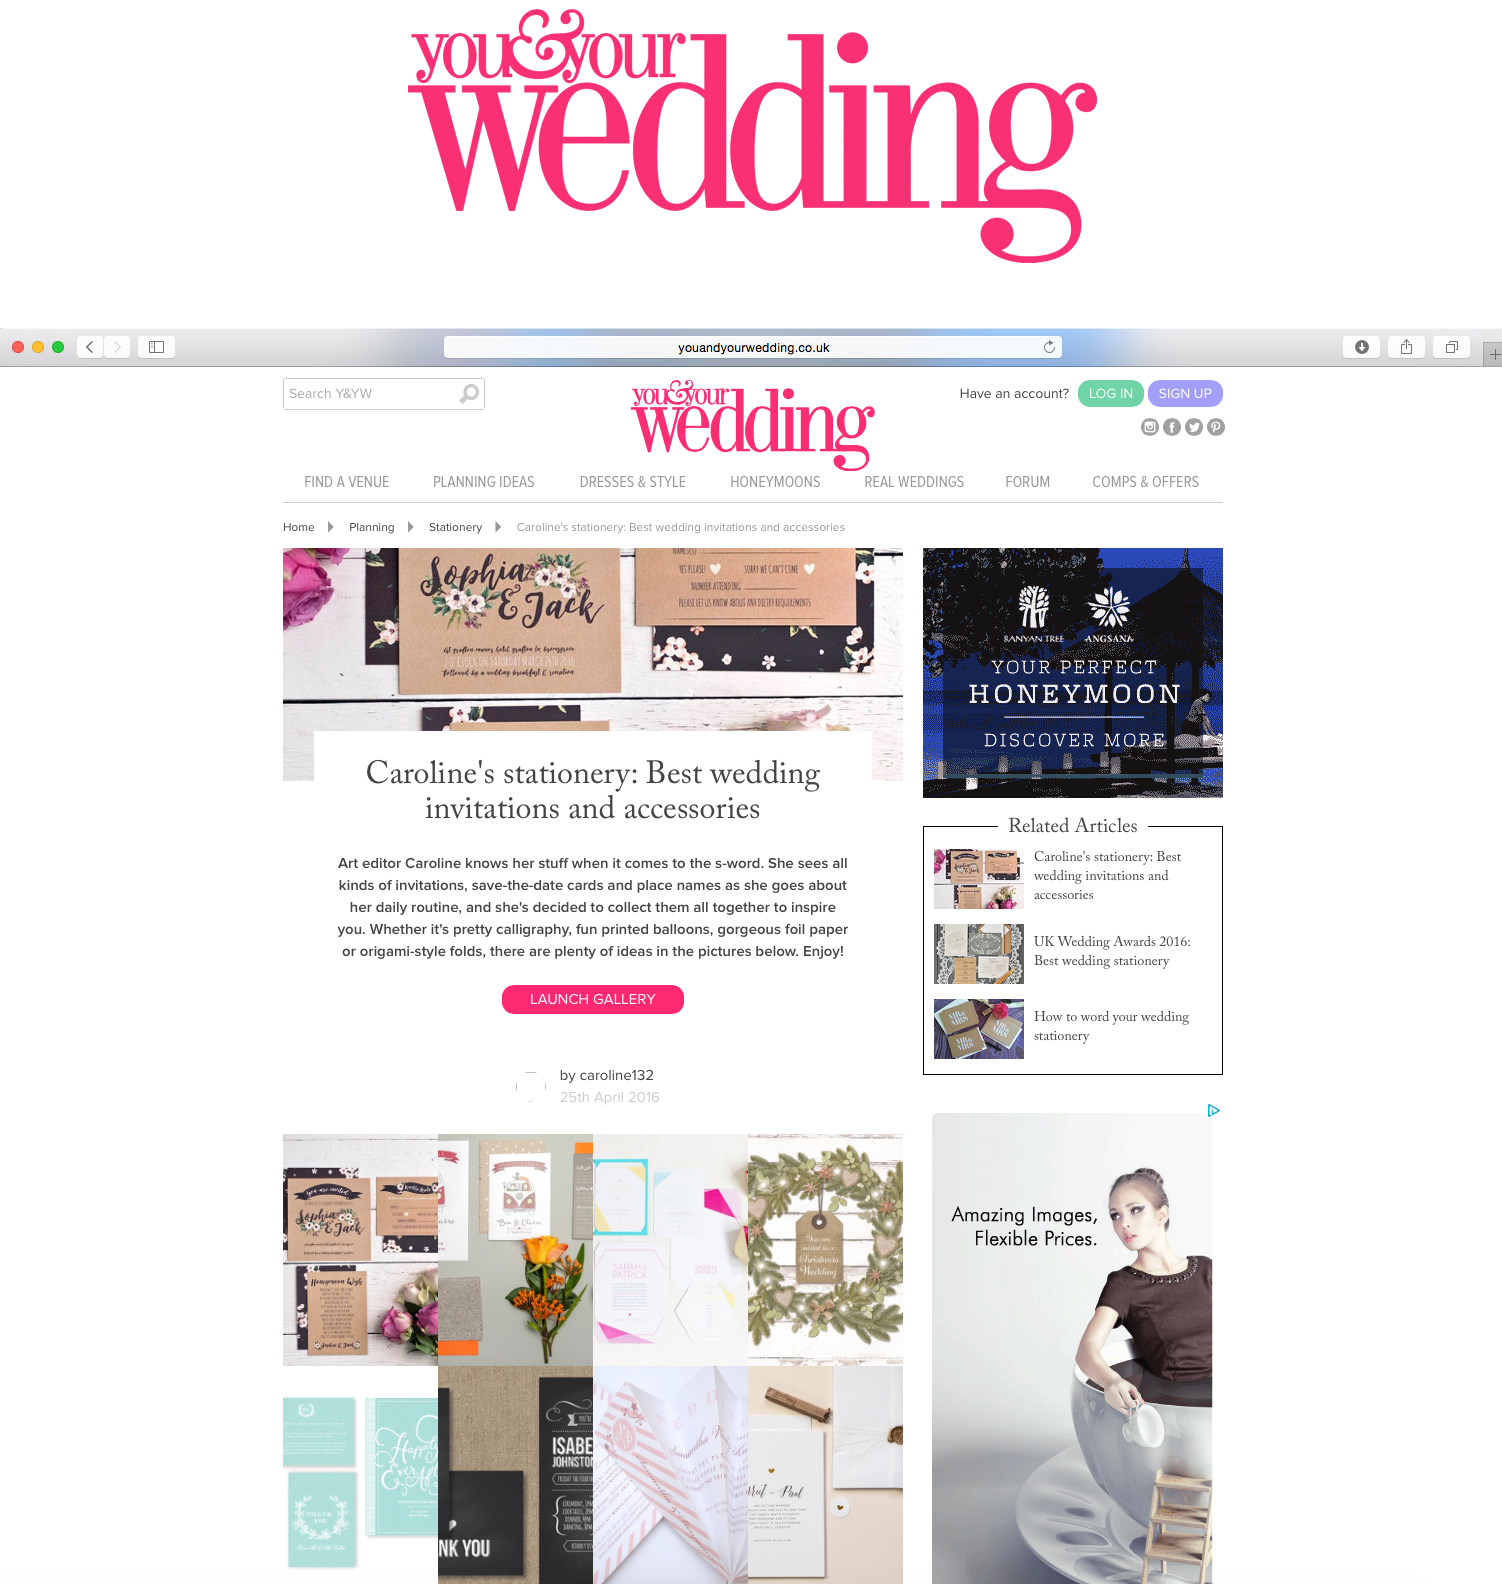 You & Your Wedding, Caroline's stationery: best wedding invitations and accessories